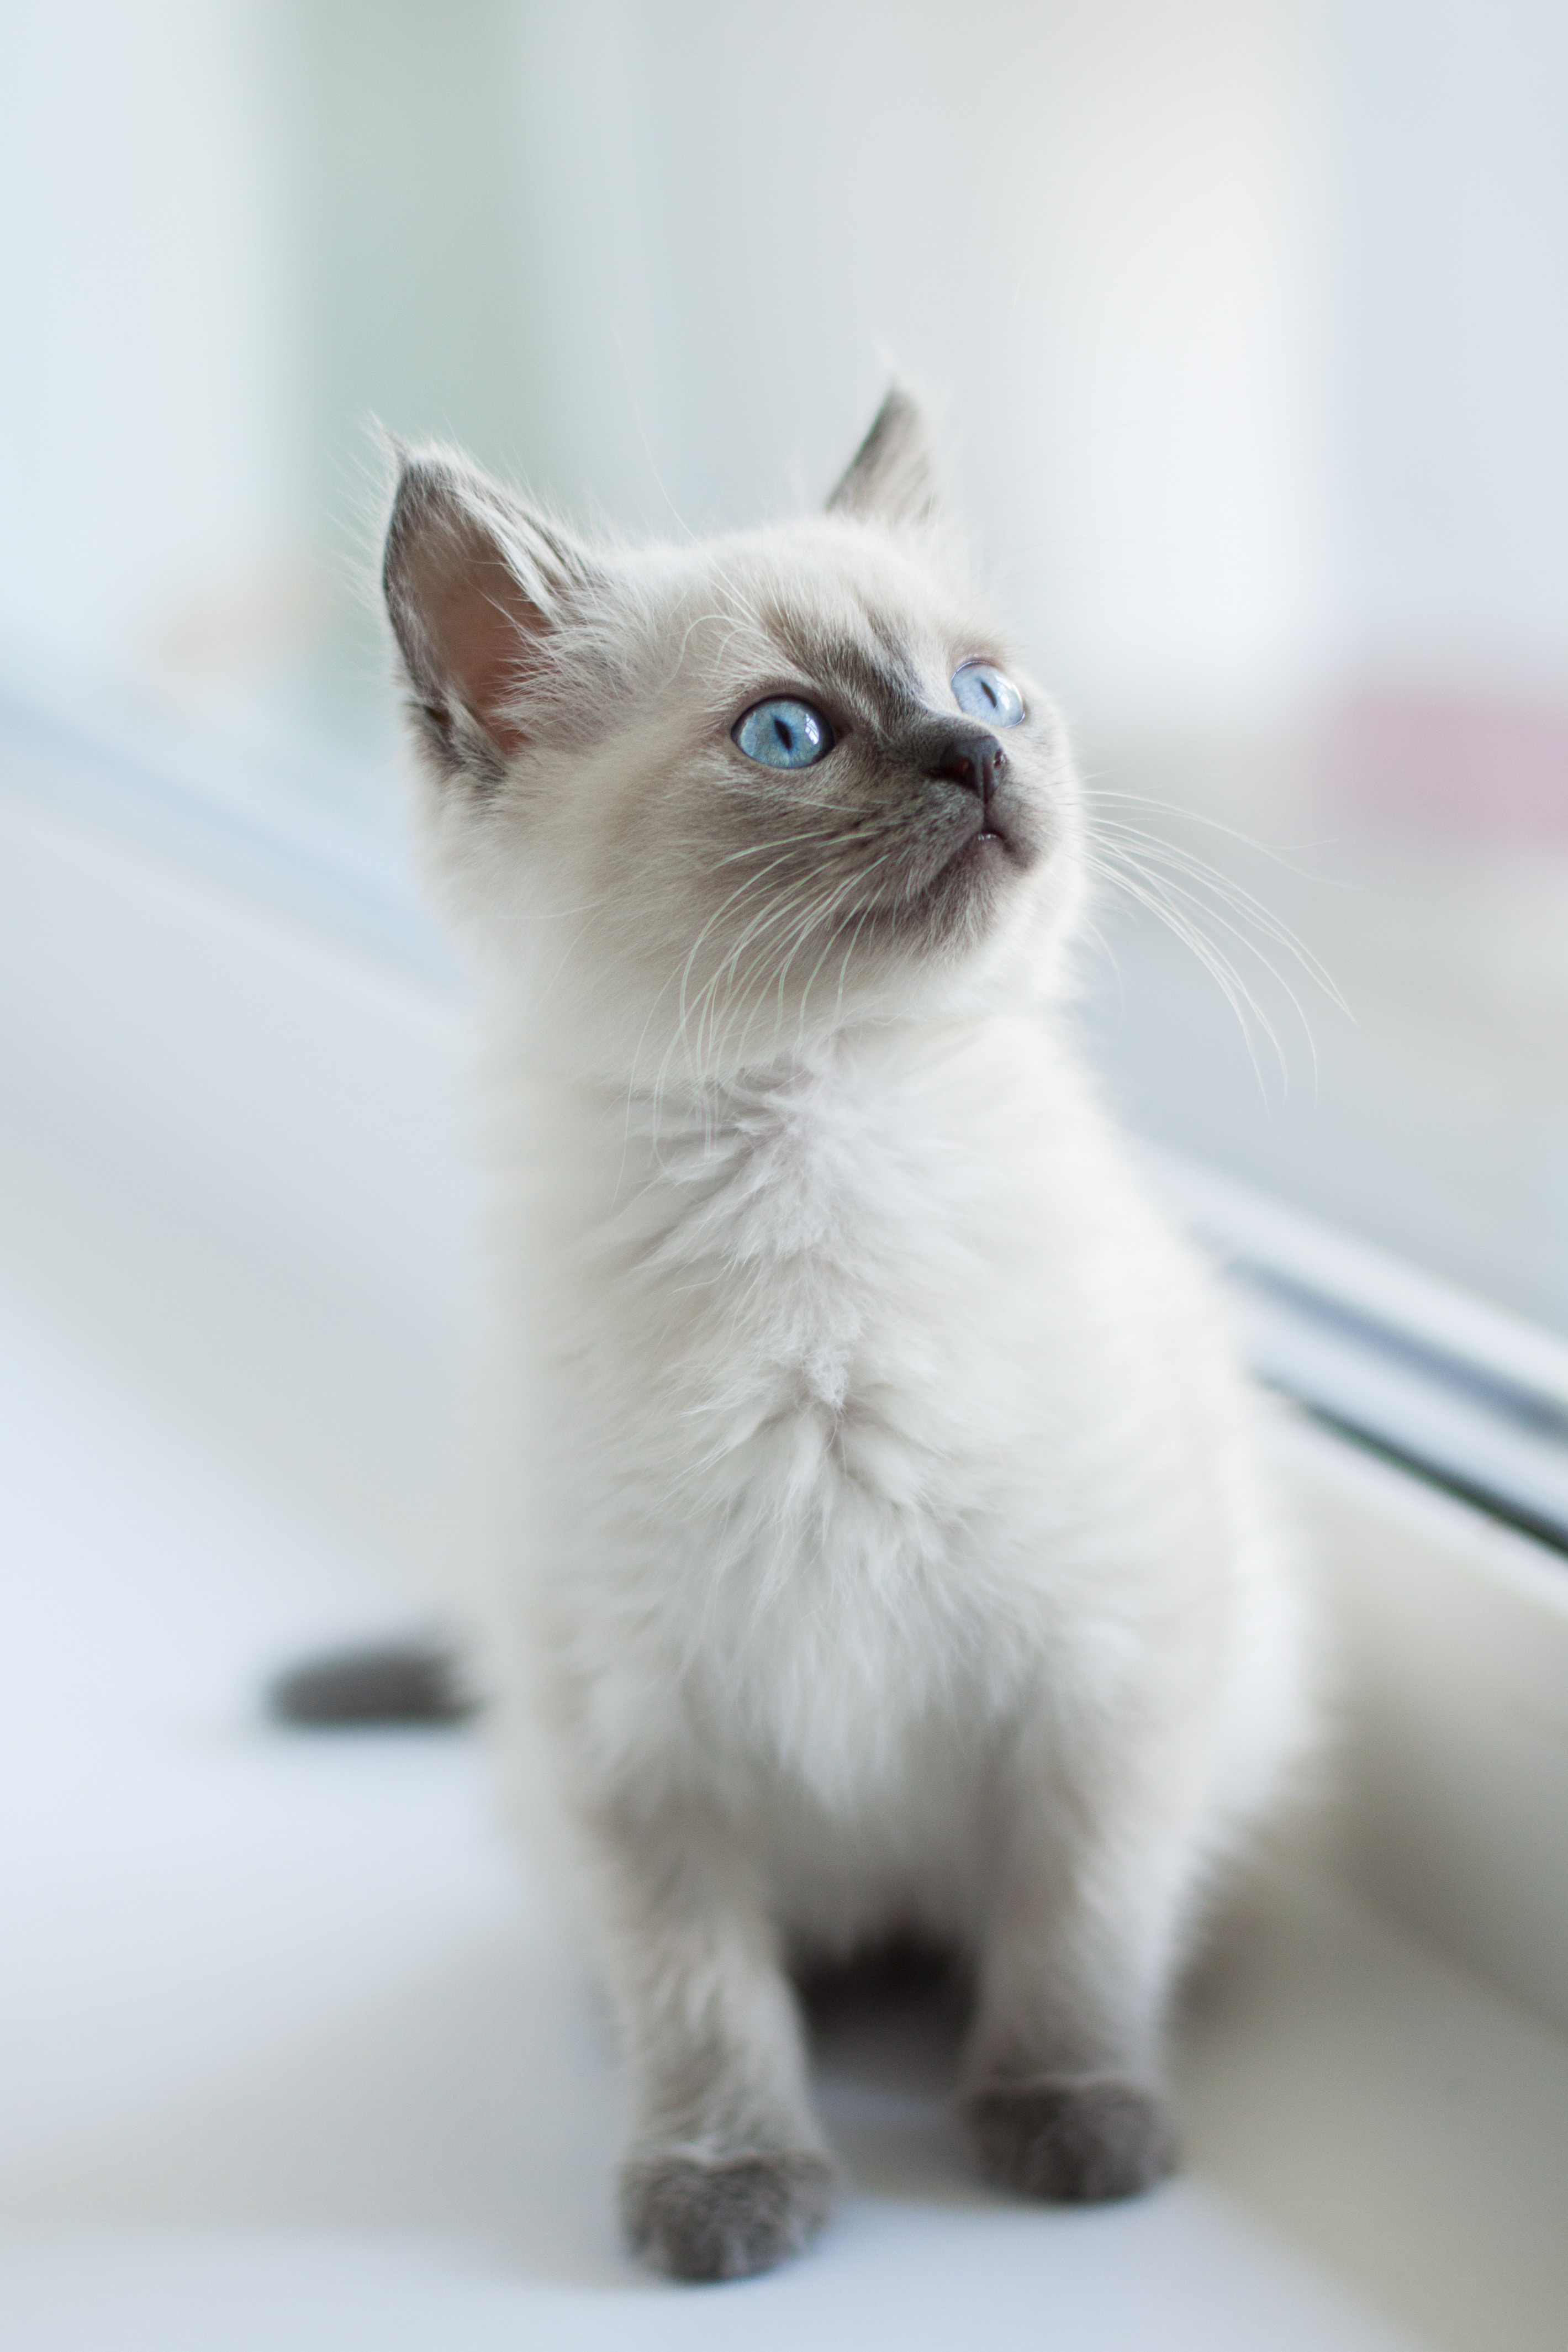 107923 download wallpaper Animals, Burmese Cat, Kitty, Kitten, Sight, Opinion, Pet screensavers and pictures for free